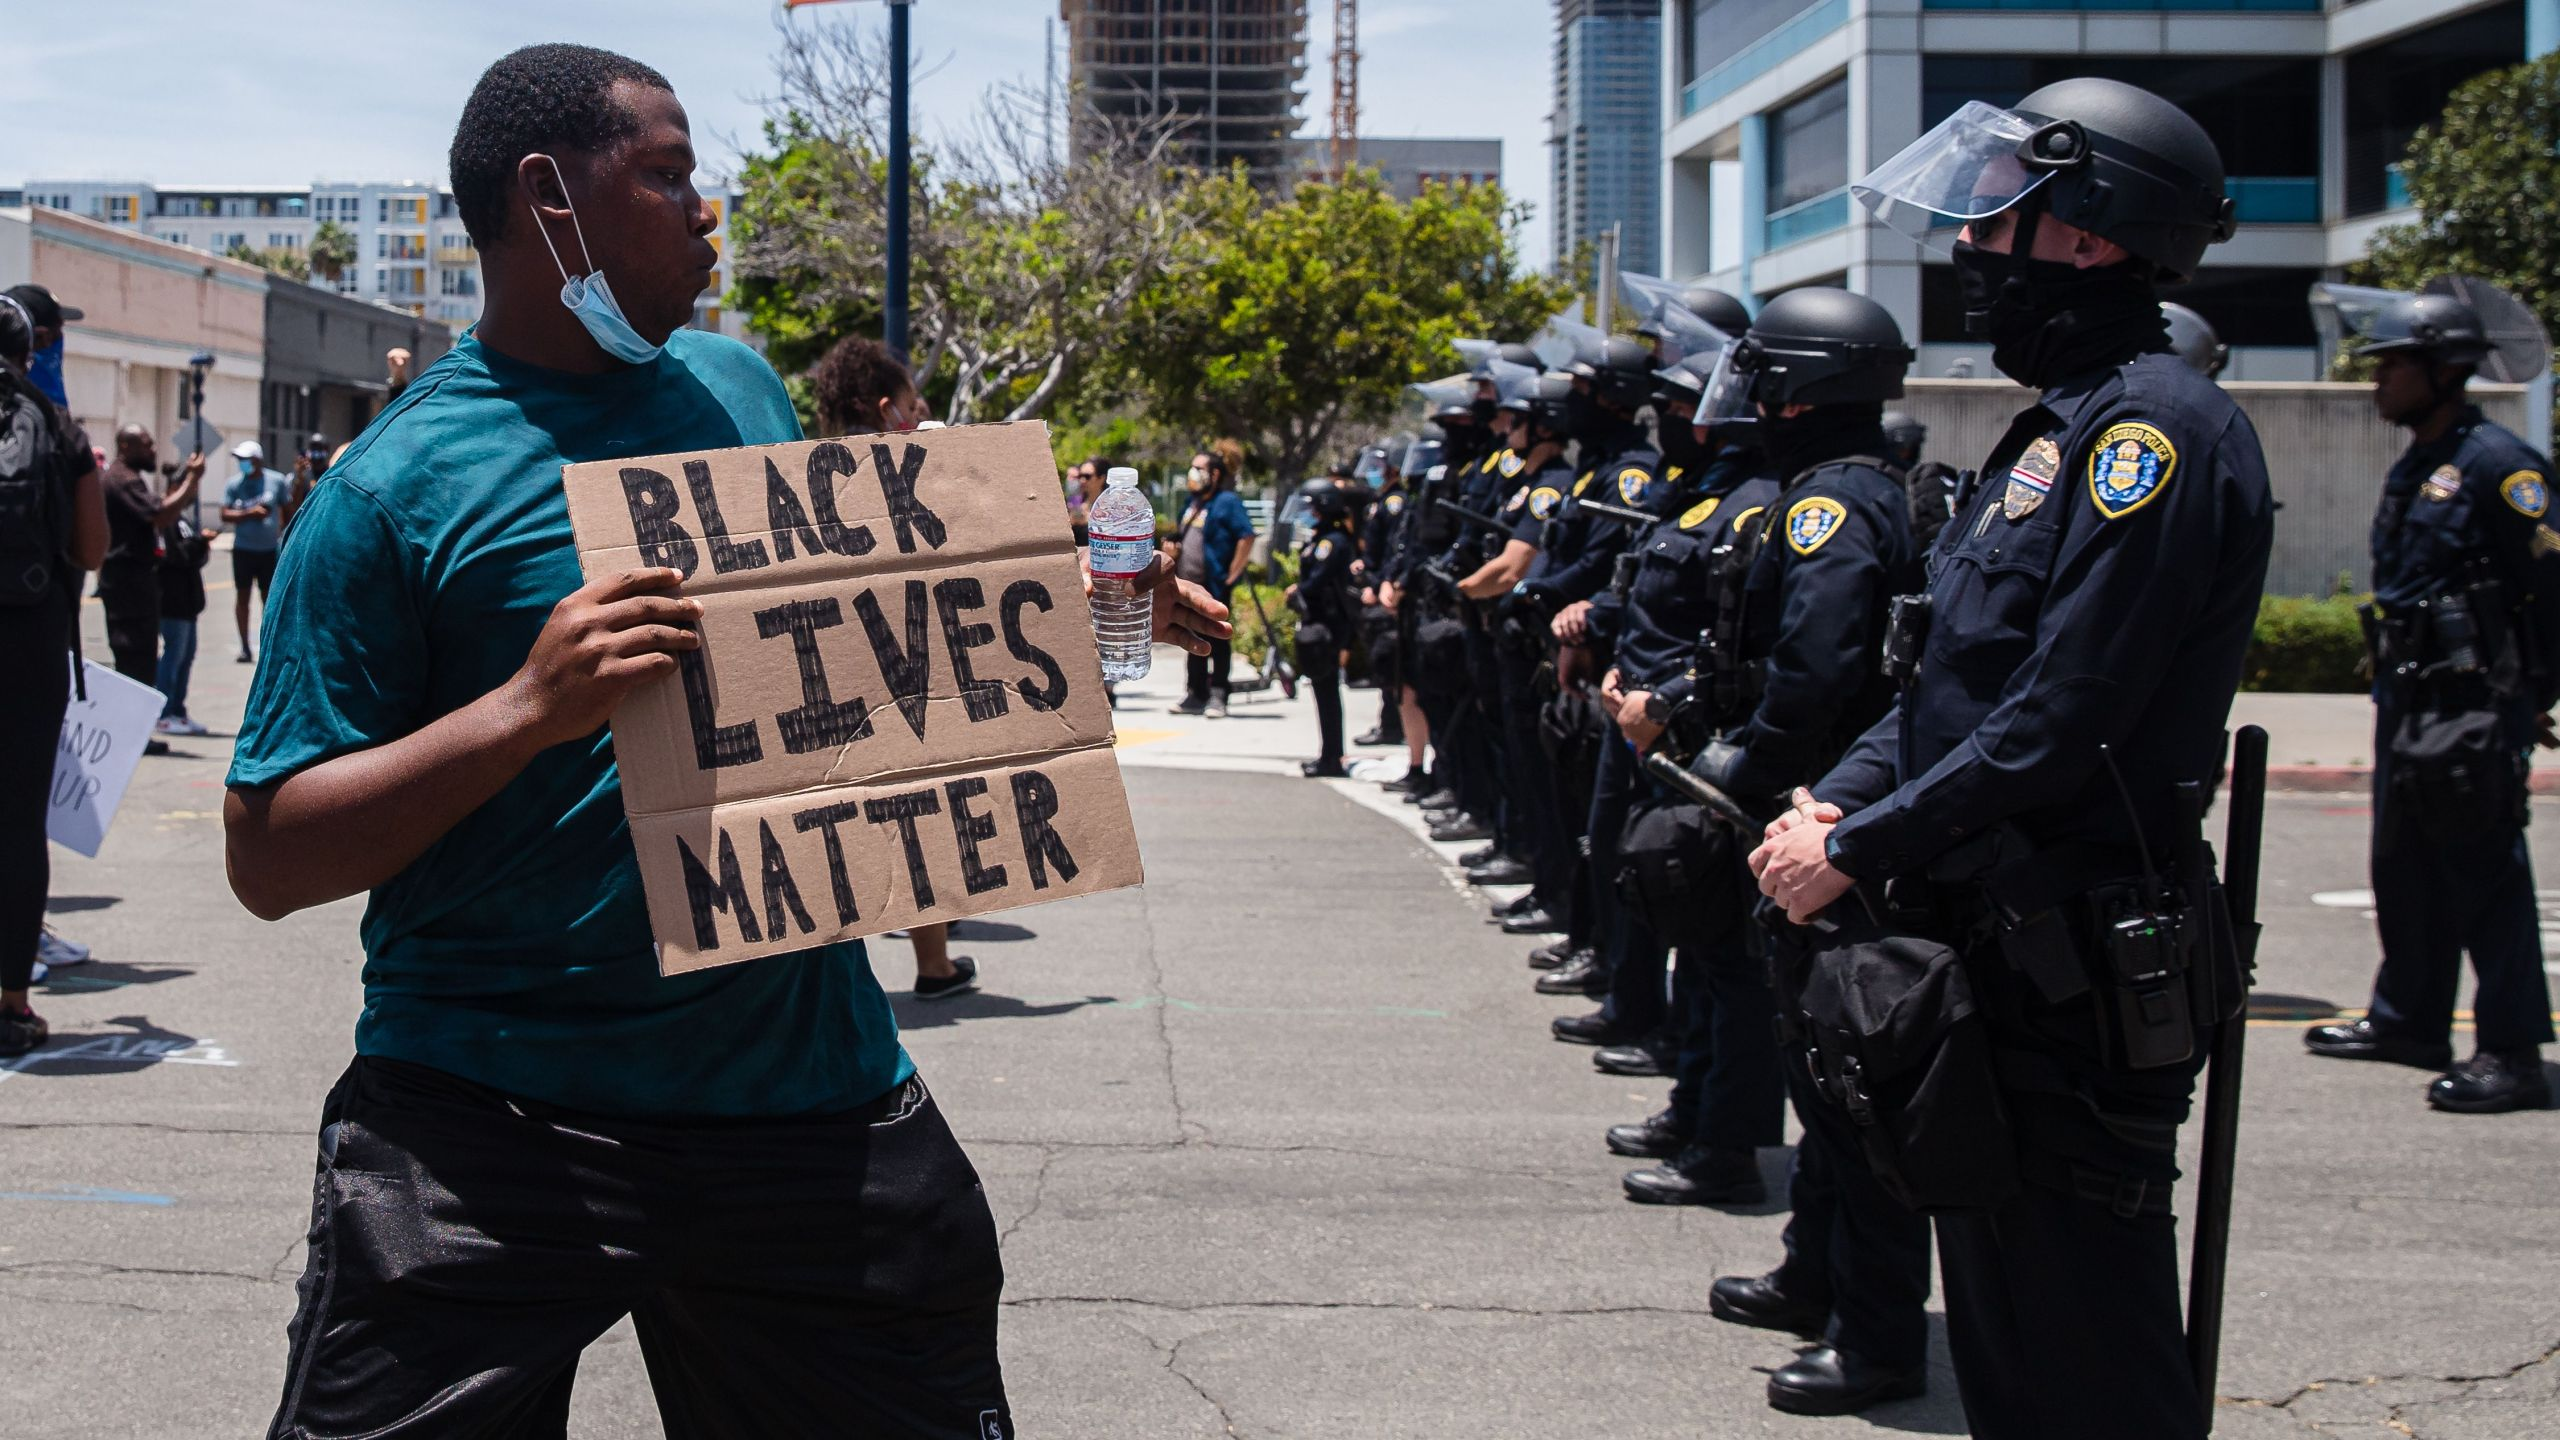 A man holds a Black Lives Matter sign in front of the San Diego Police in downtown San Diego, California on May 31, 2020, as they protest the death of George Floyd.(ARIANA DREHSLER/AFP via Getty Images)